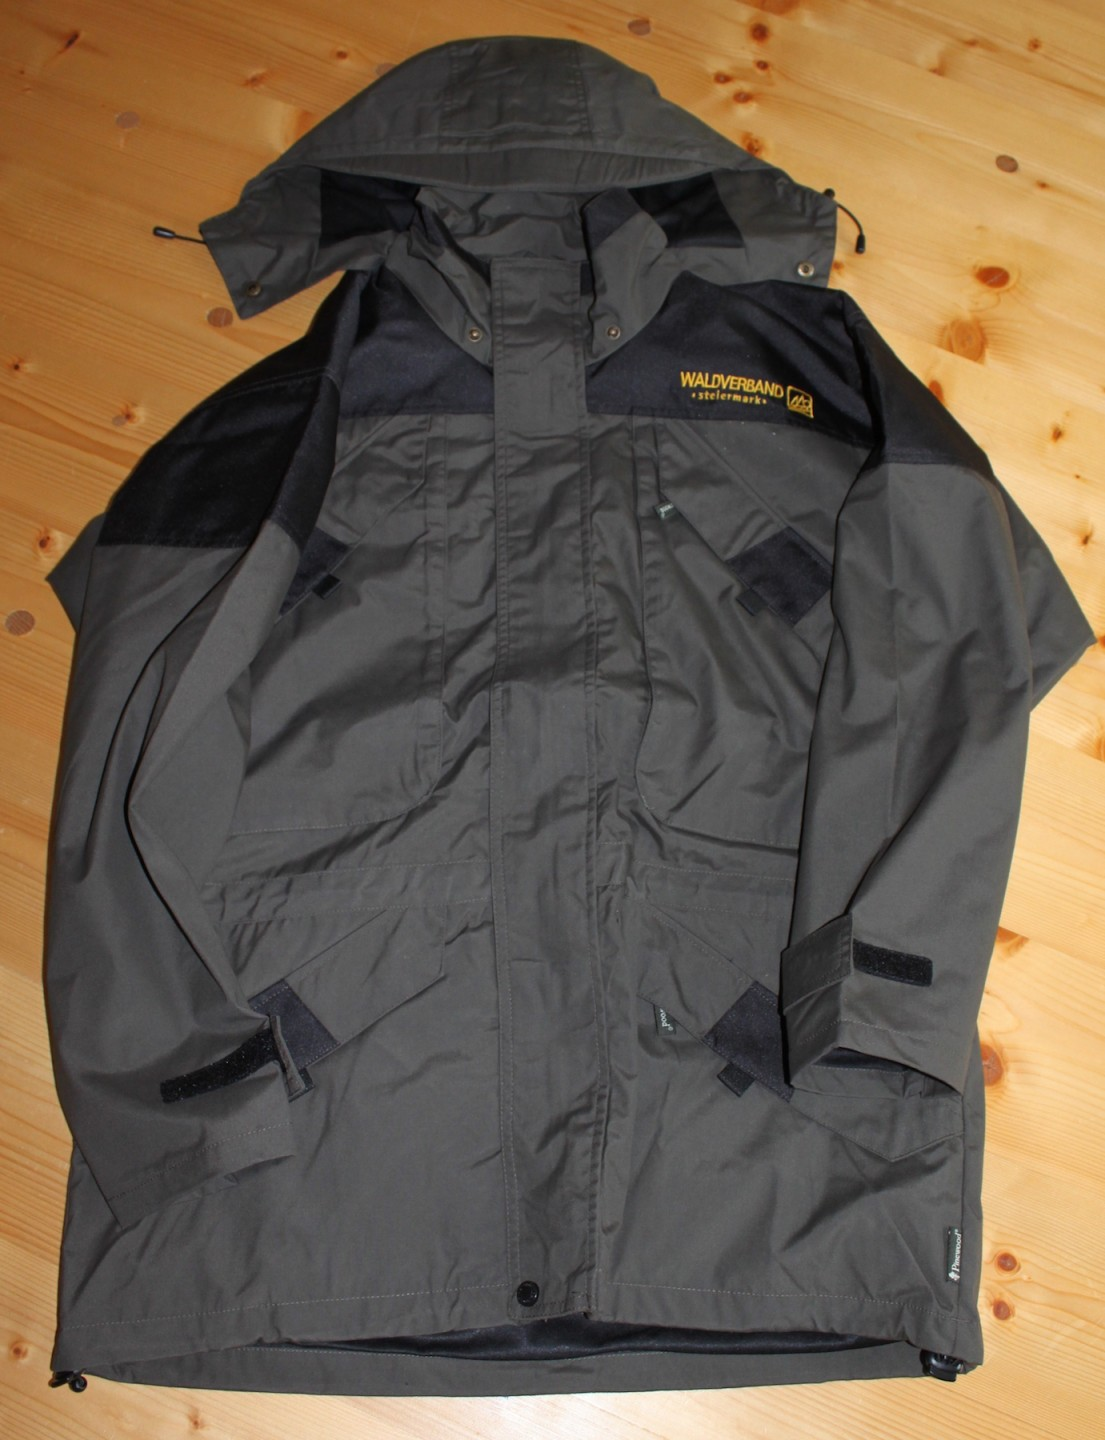 Waldverband Outdoor Jacke